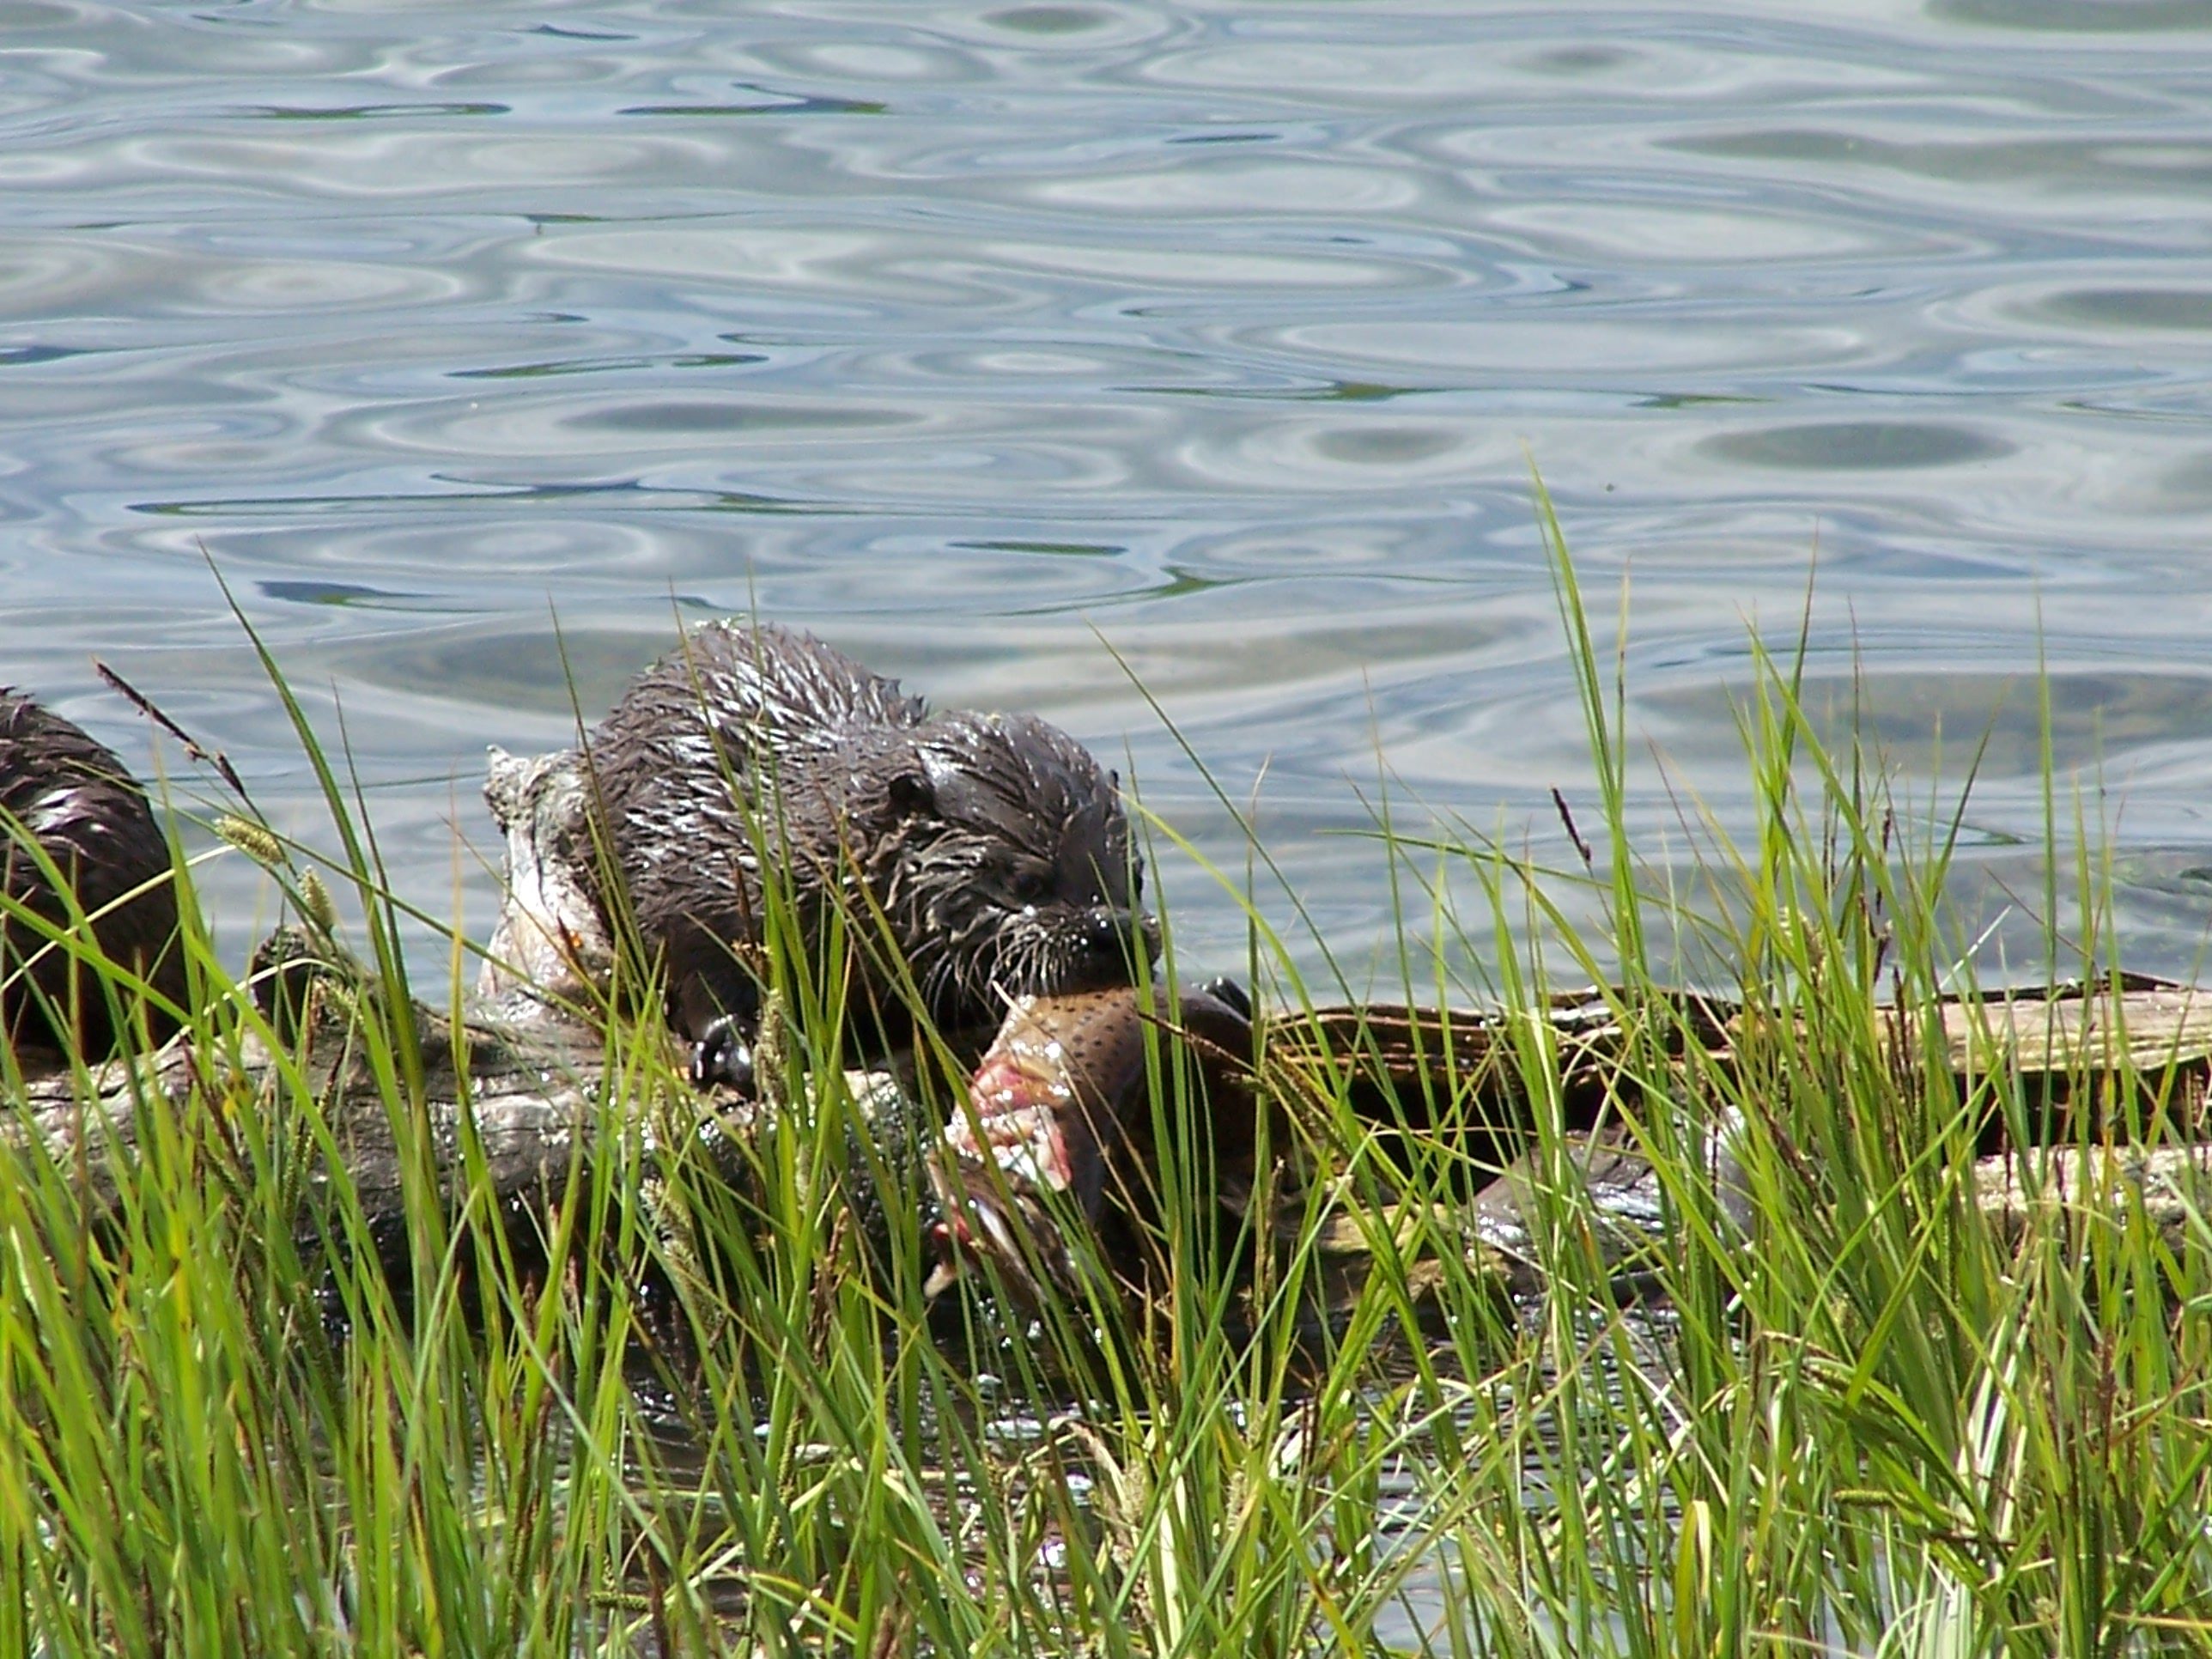 Otters in Yellowstone